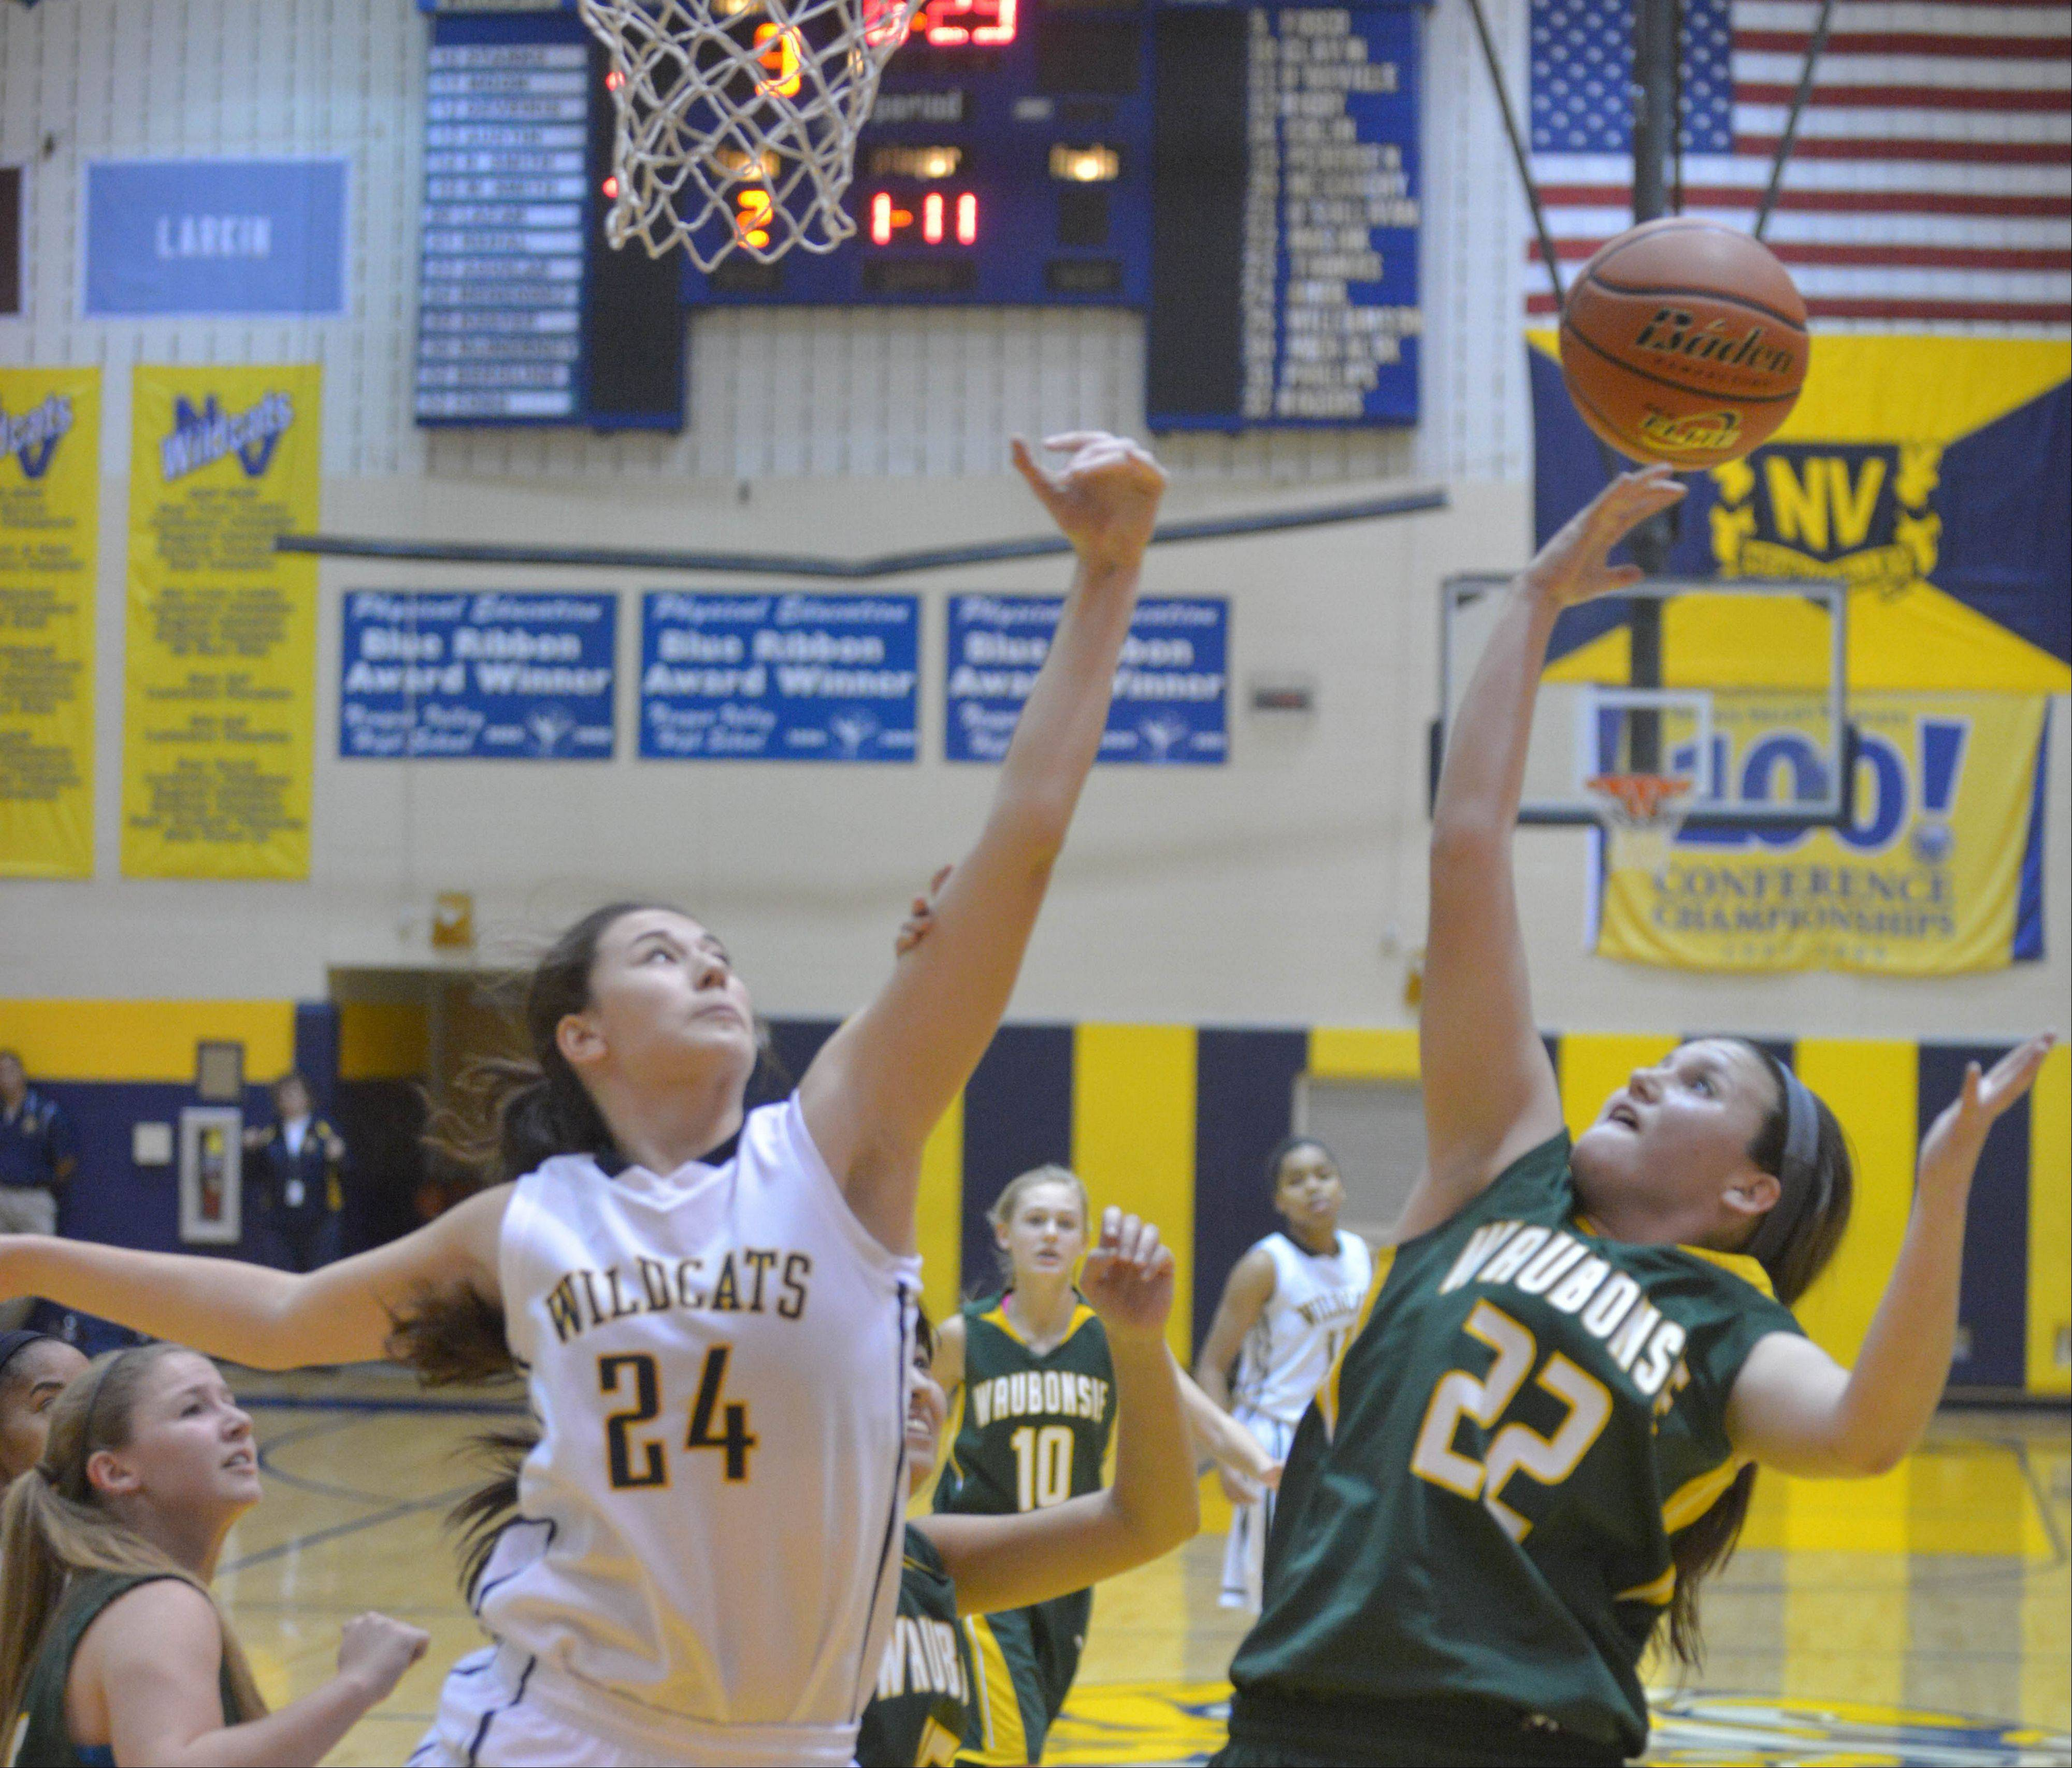 Bryce Menendez, left, of Neuqua and Jordan Masiak of Waubonsie go for a rebound during the Waubonsie Valley at Neuqua Valley girls basketball game Saturday.